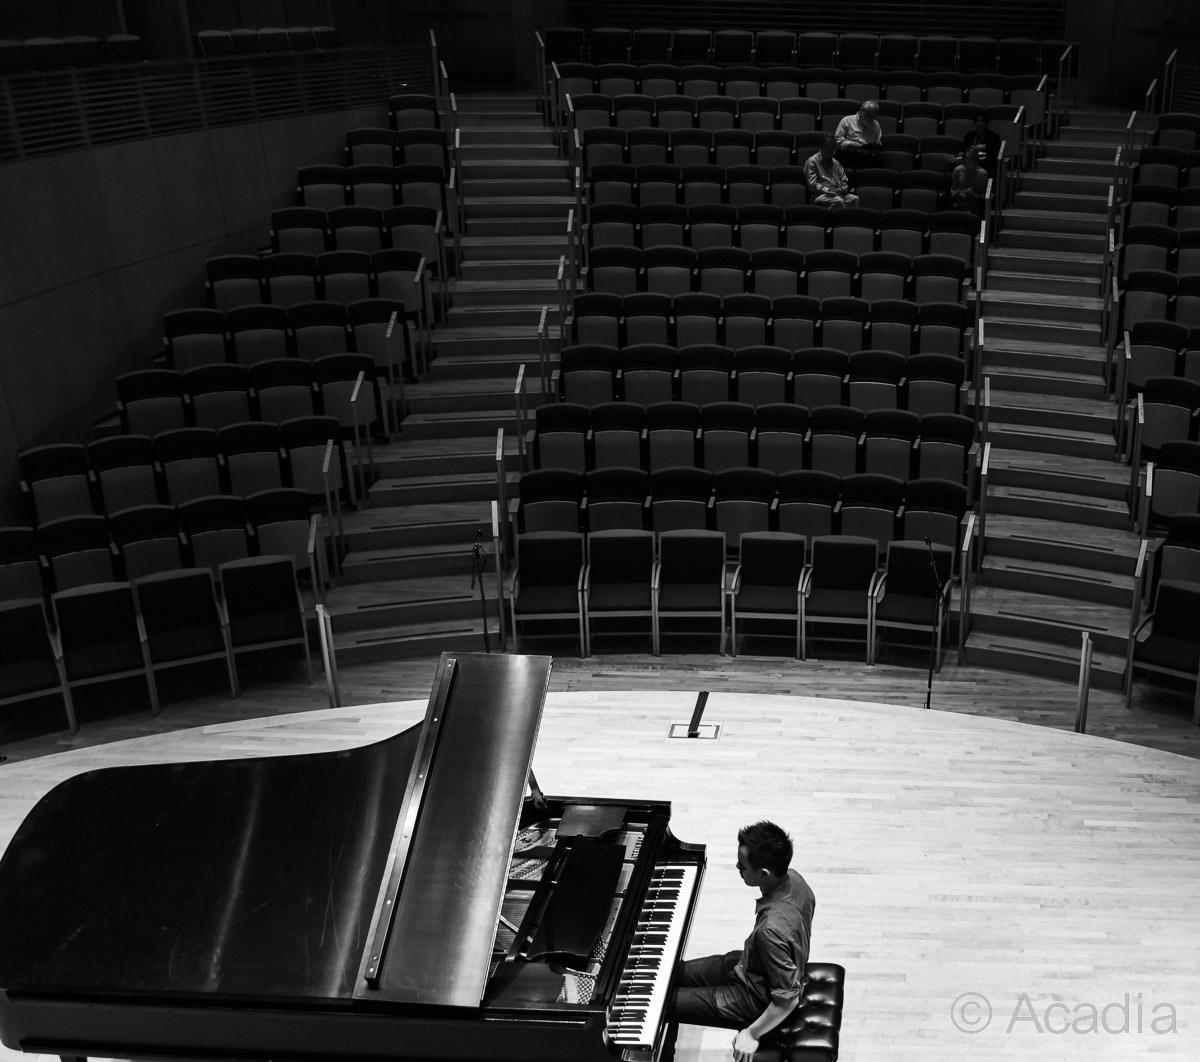 Piano artist in an empty concert hall